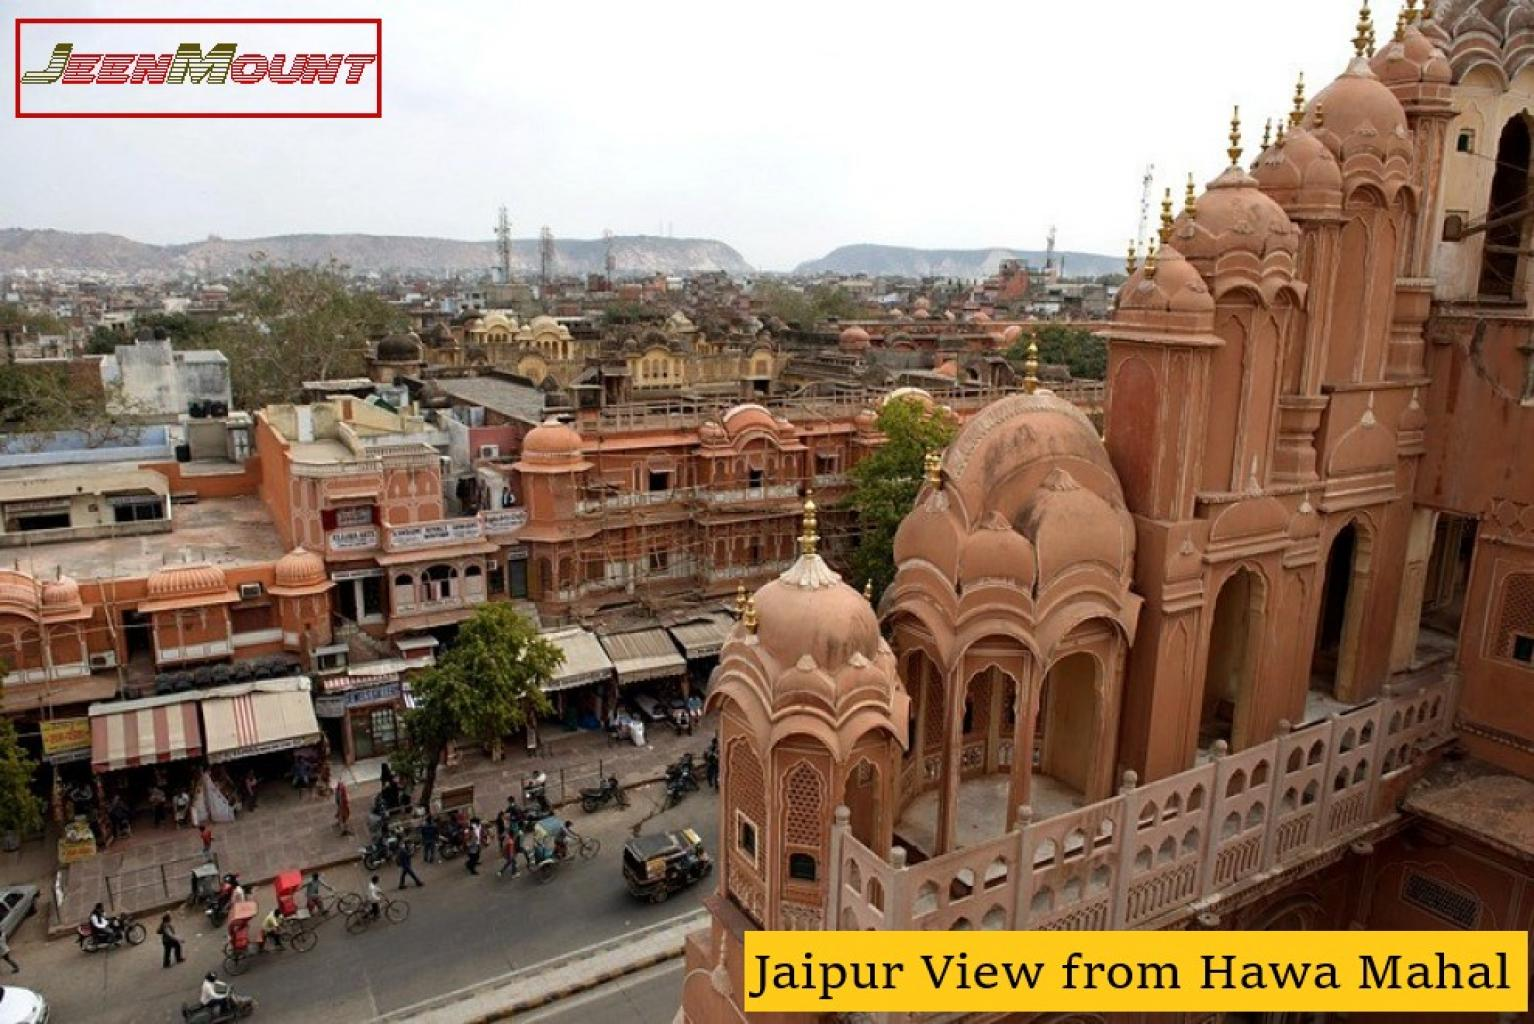 City view from Hawa Mahal